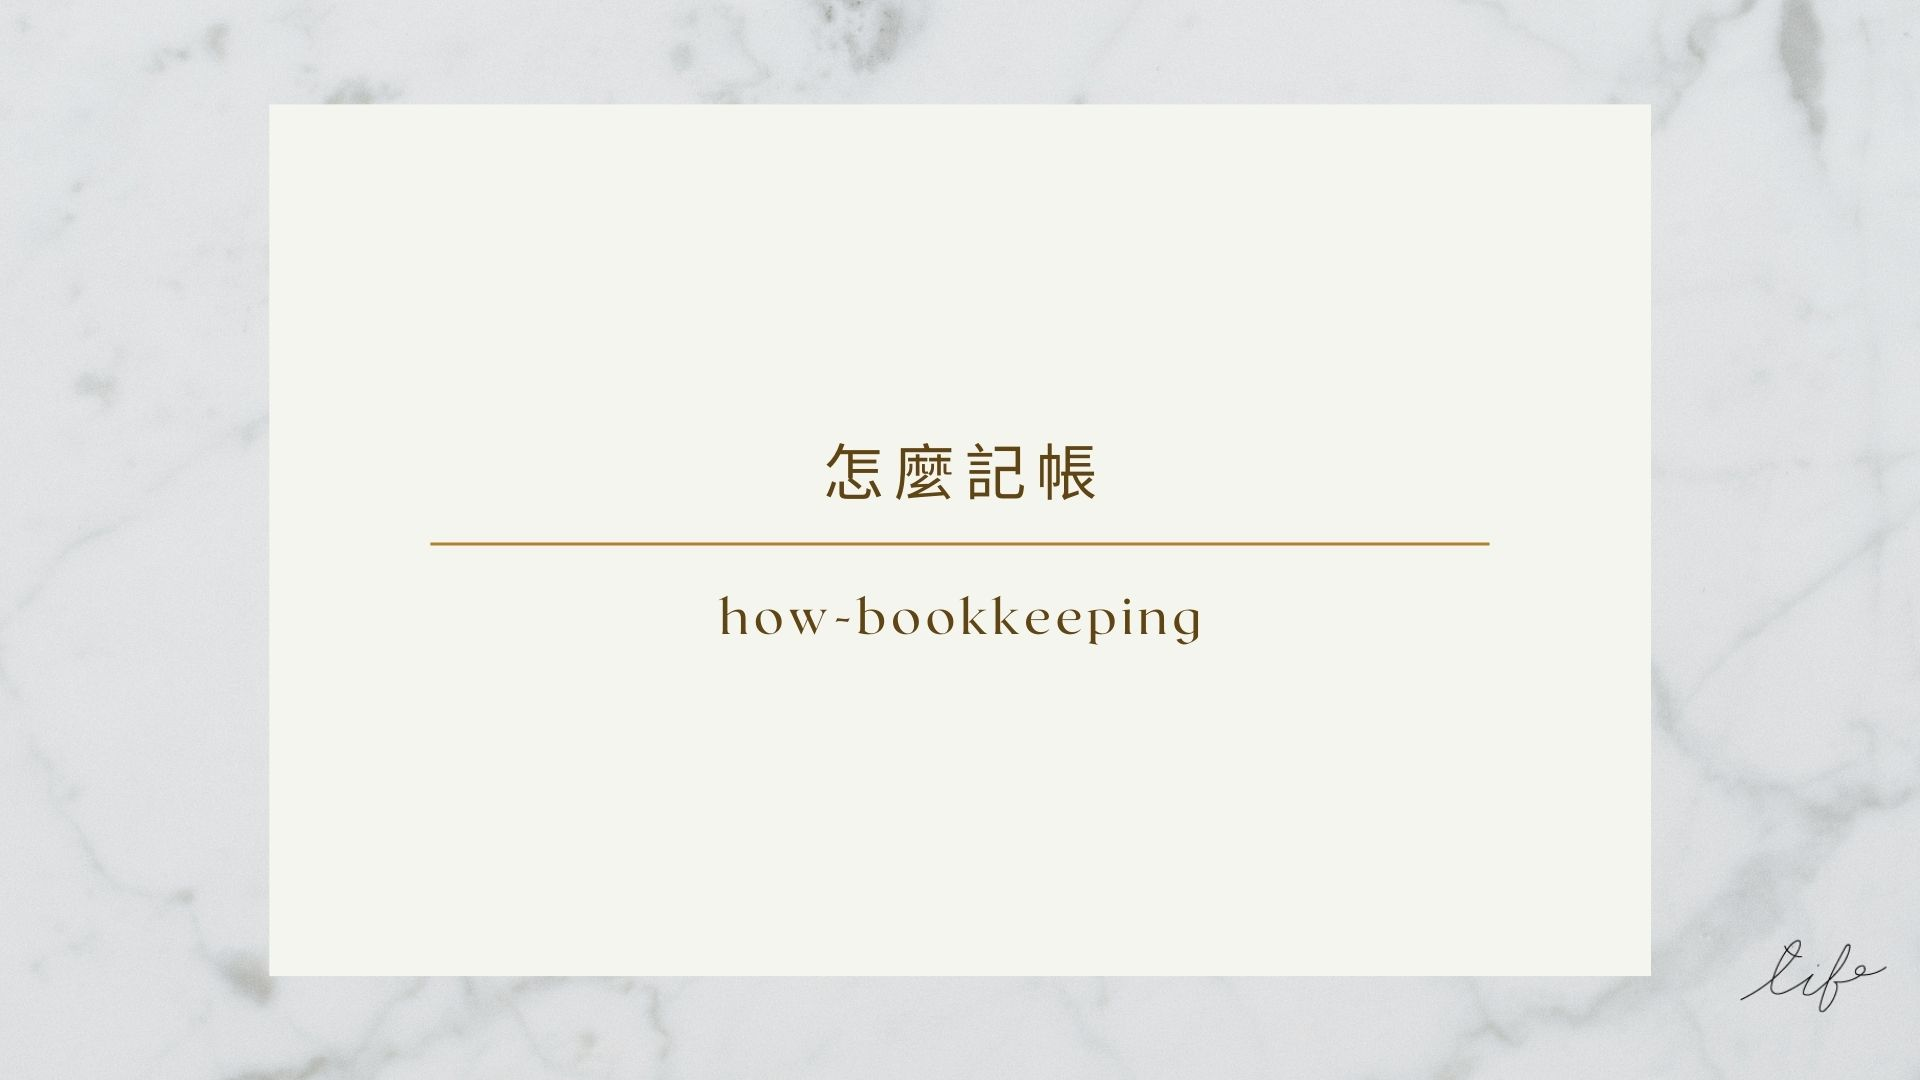 how-bookkeeping怎麼記帳